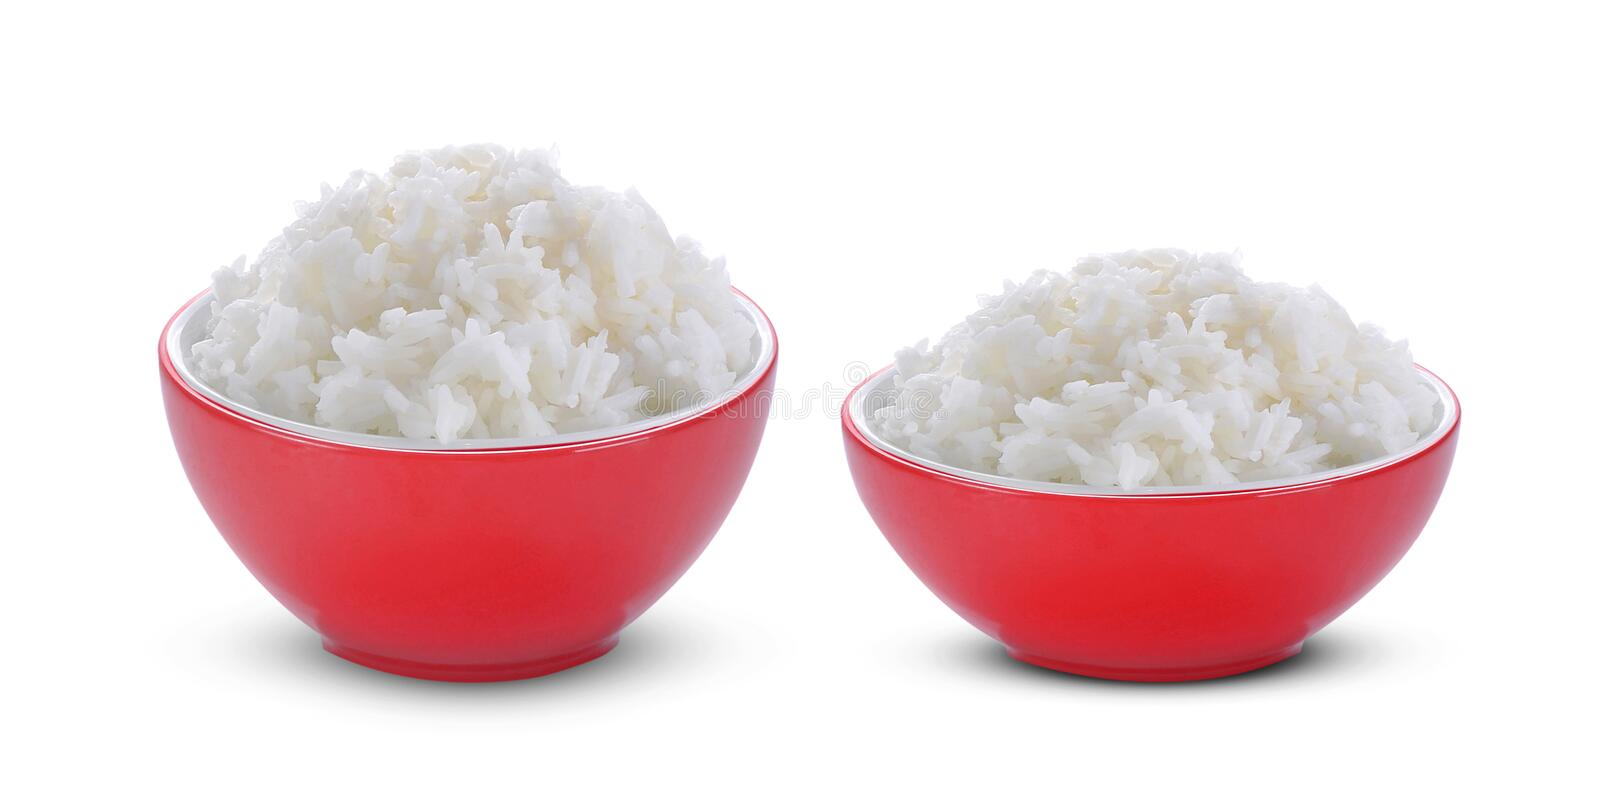 Rice in red bowl on white background stock photos